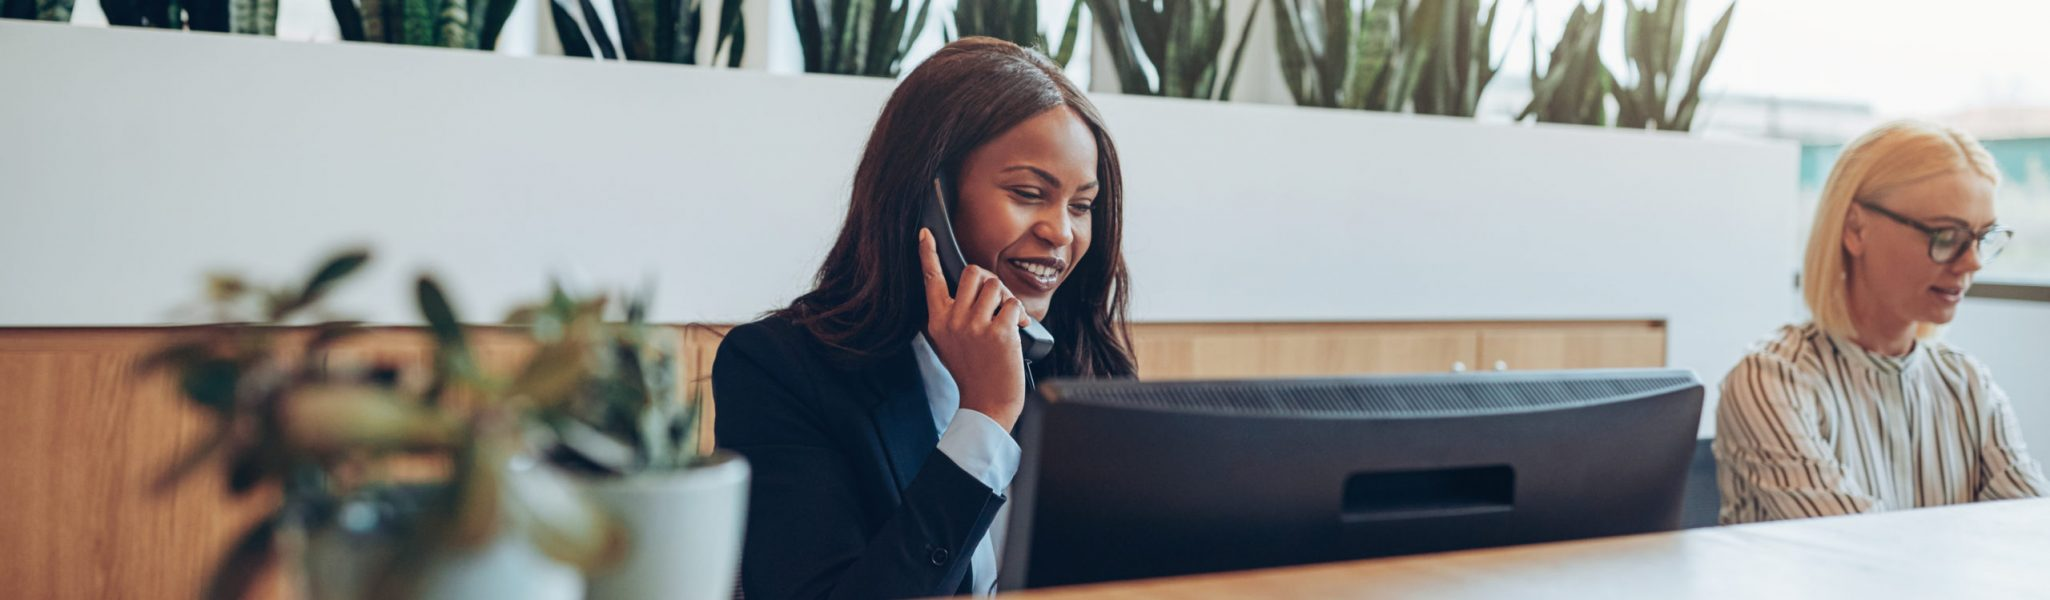 Smiling young African American businesswoman talking on the telephone while working with a colleague at an office reception desk